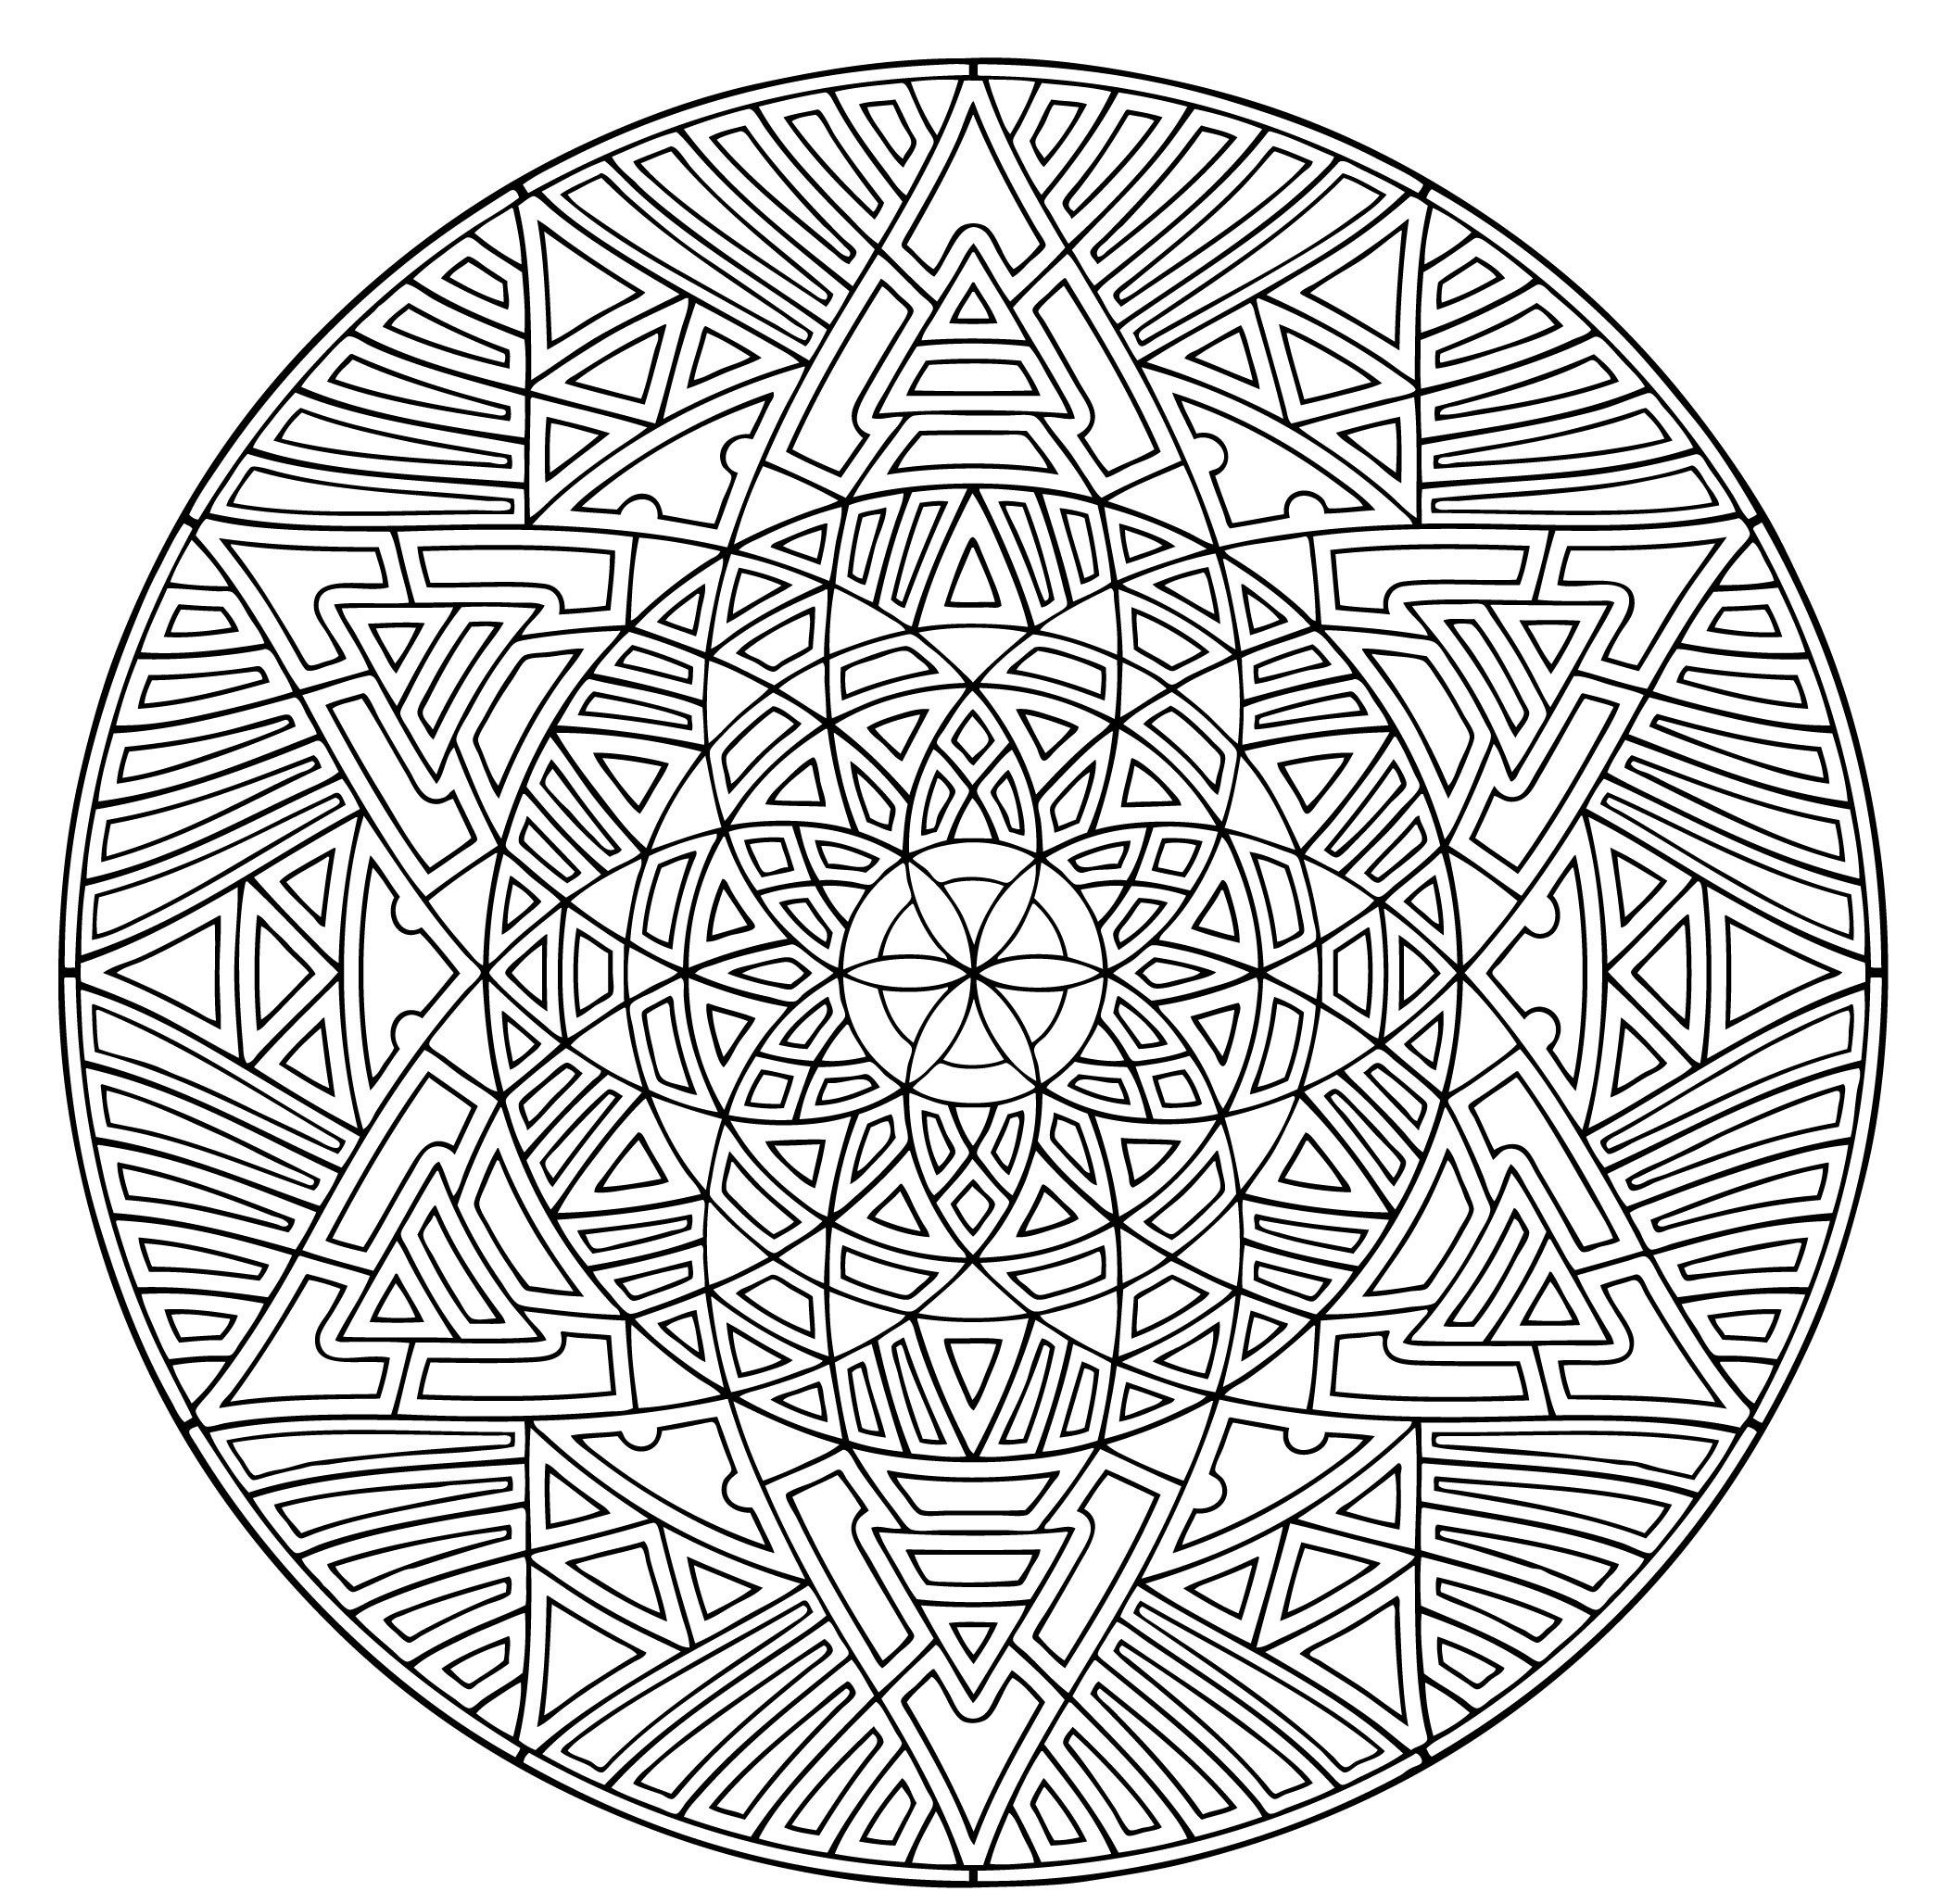 Simple Kaleidoscope Coloring Pages, Kids, Kaleidoscope Coloring